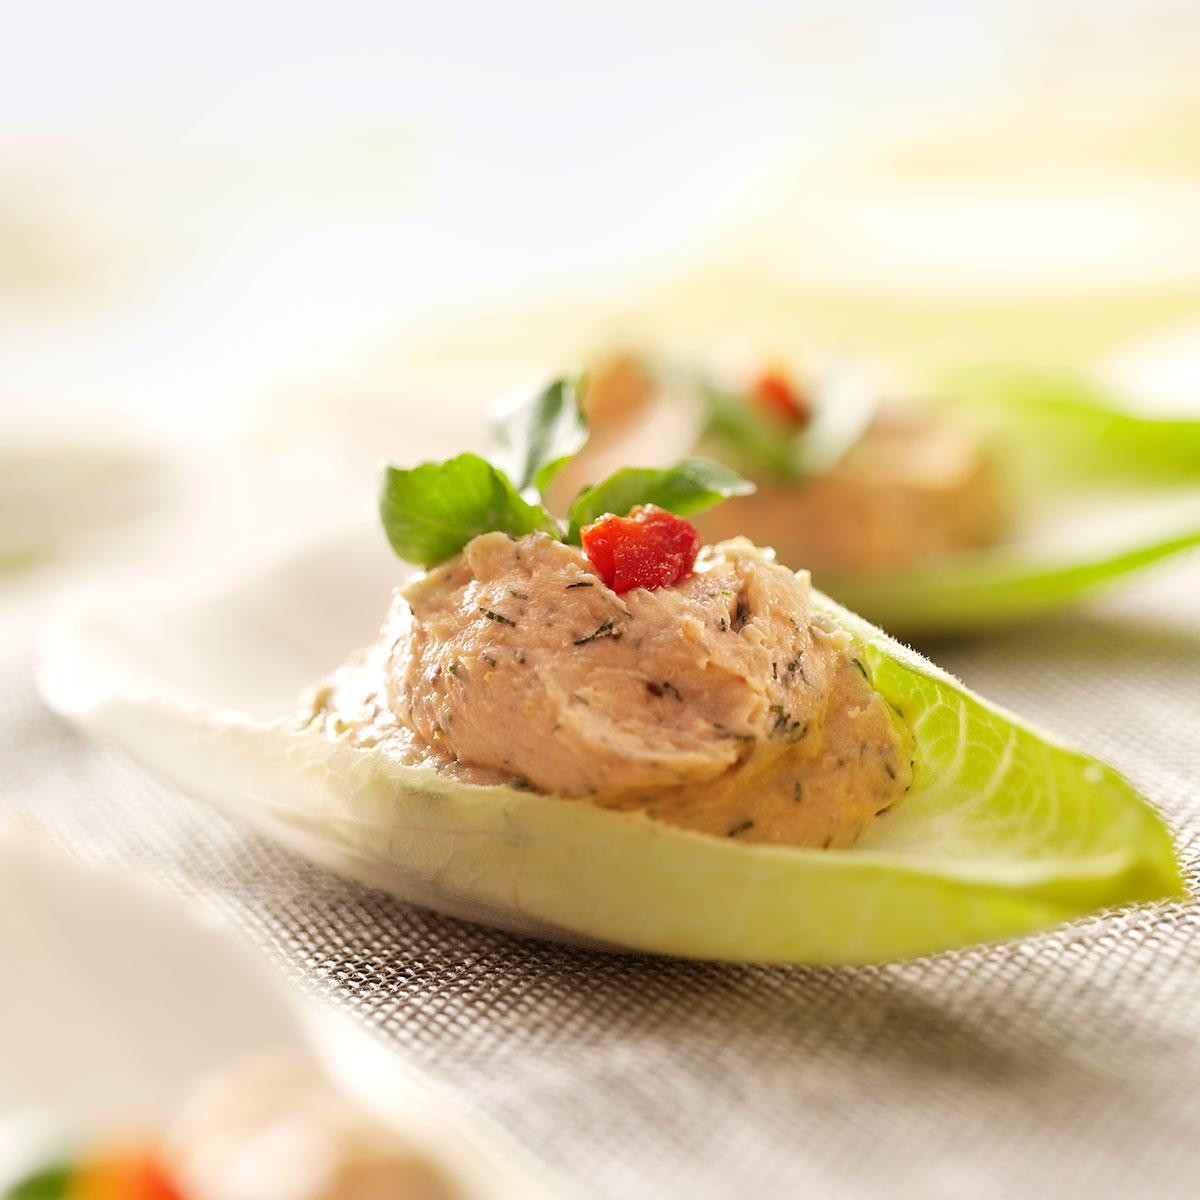 Salmon Mousse Recipe  Salmon Mousse Endive Leaves Recipe